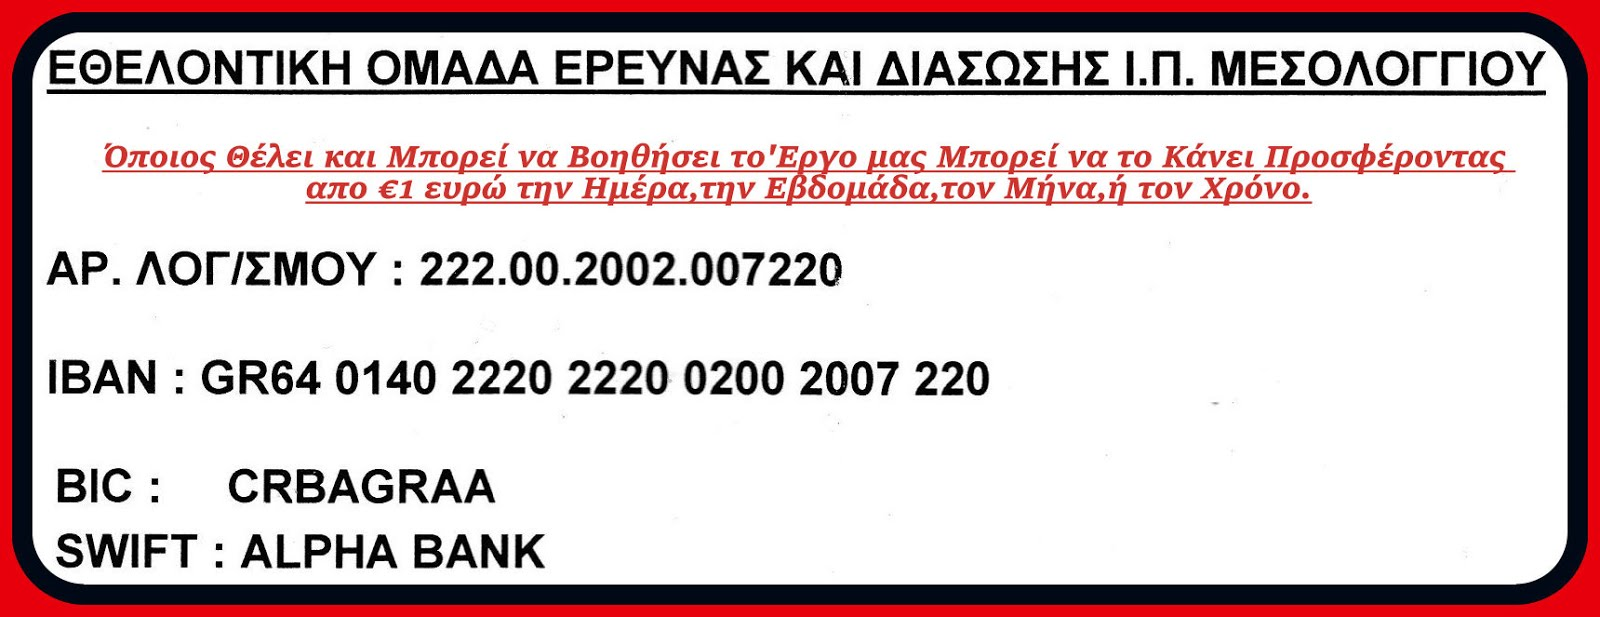 ΕΔΩ ΜΠΟΡΕΙΤΕ ΝΑ ΜΑΣ ΒΟΗΘΗΣΕΤΕ